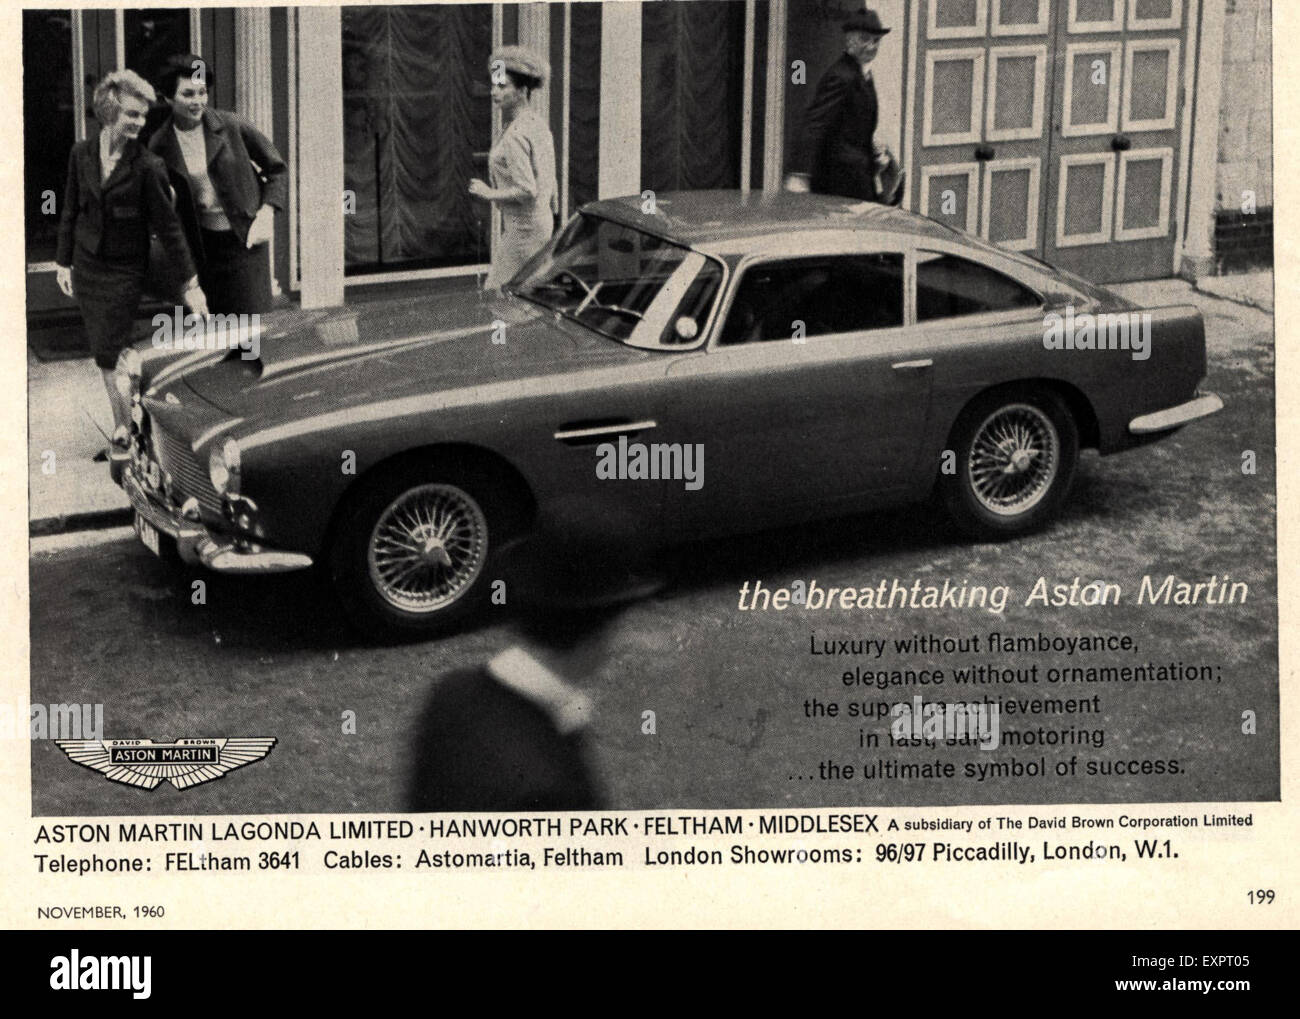 1960s uk aston martin magazine advert stock photo: 85324293 - alamy